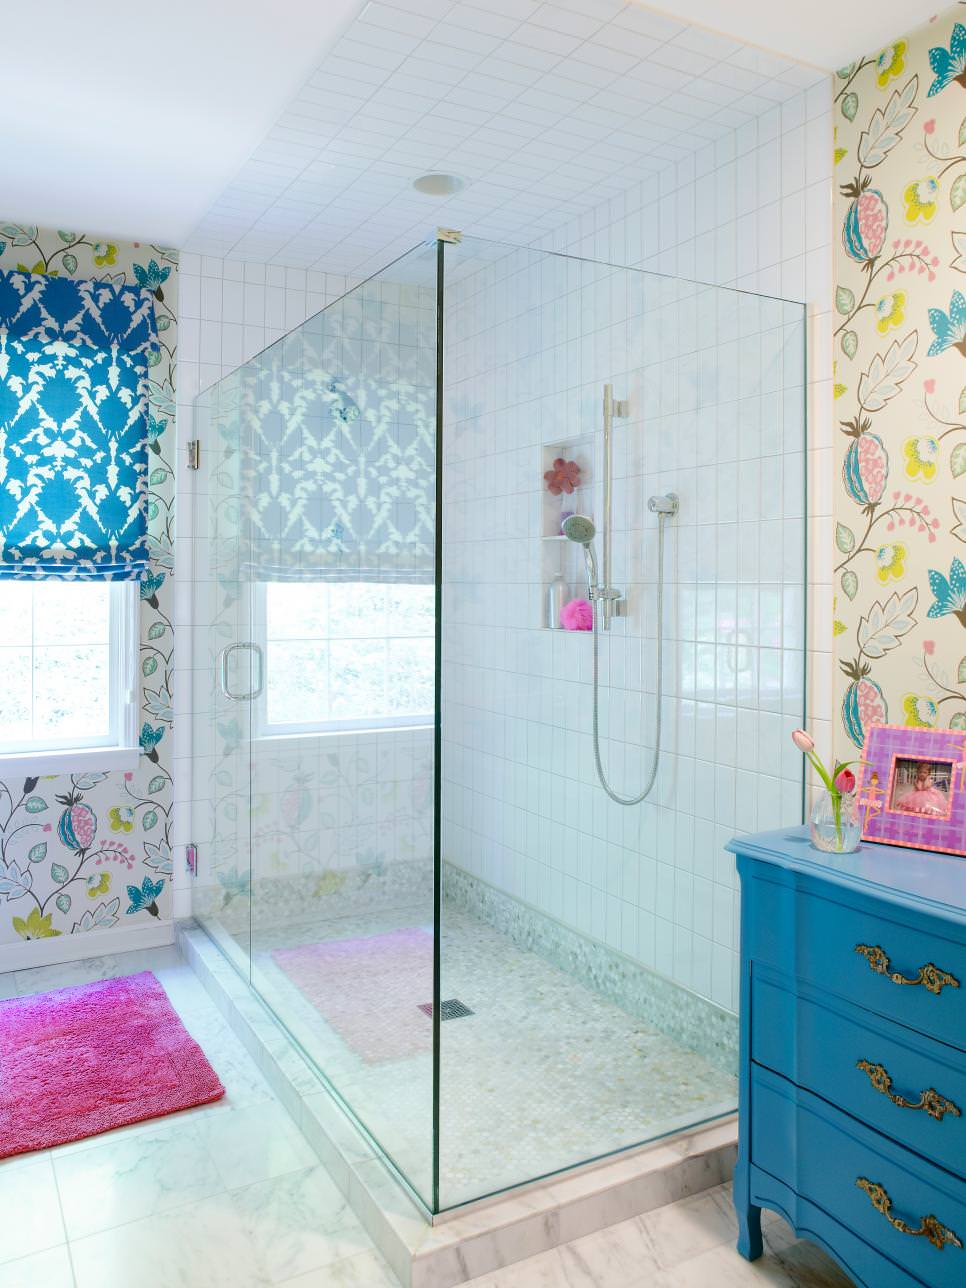 22 floral bathroom designs decorating ideas design for Bathroom wall mural ideas